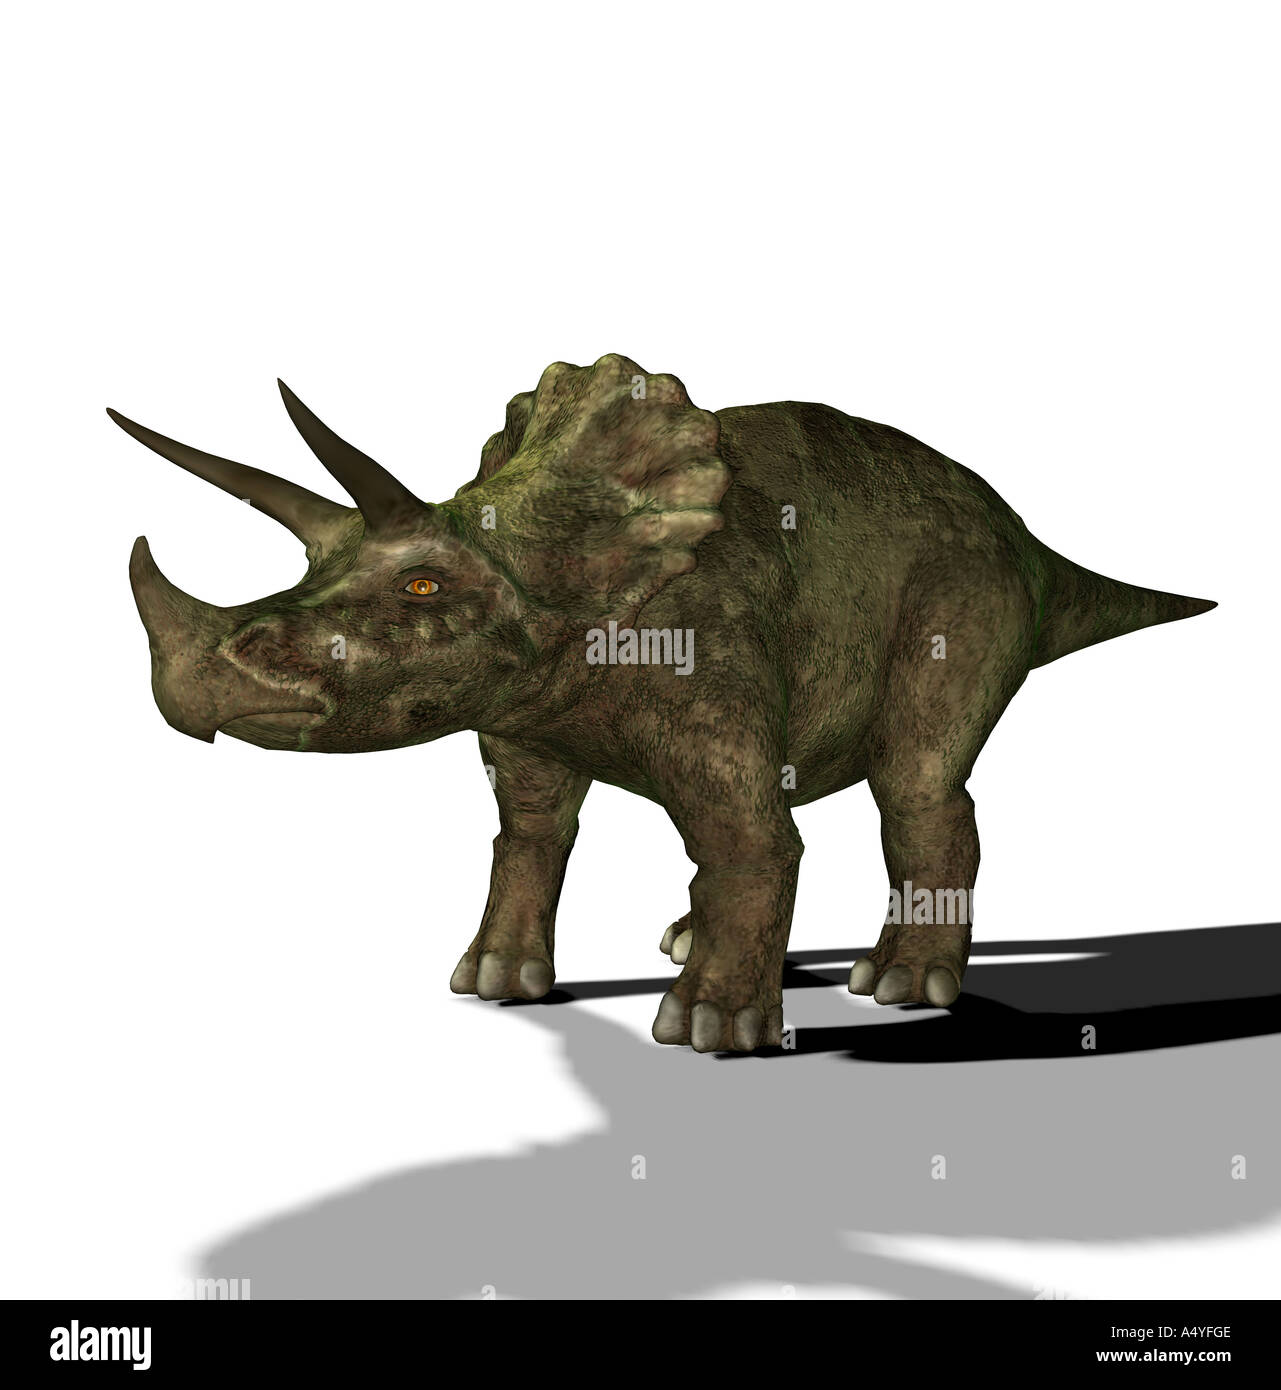 The Triceratops is called three-horn and about 9 m long and in the Cretaceous period occurred. The Triceratops is Stock Photo